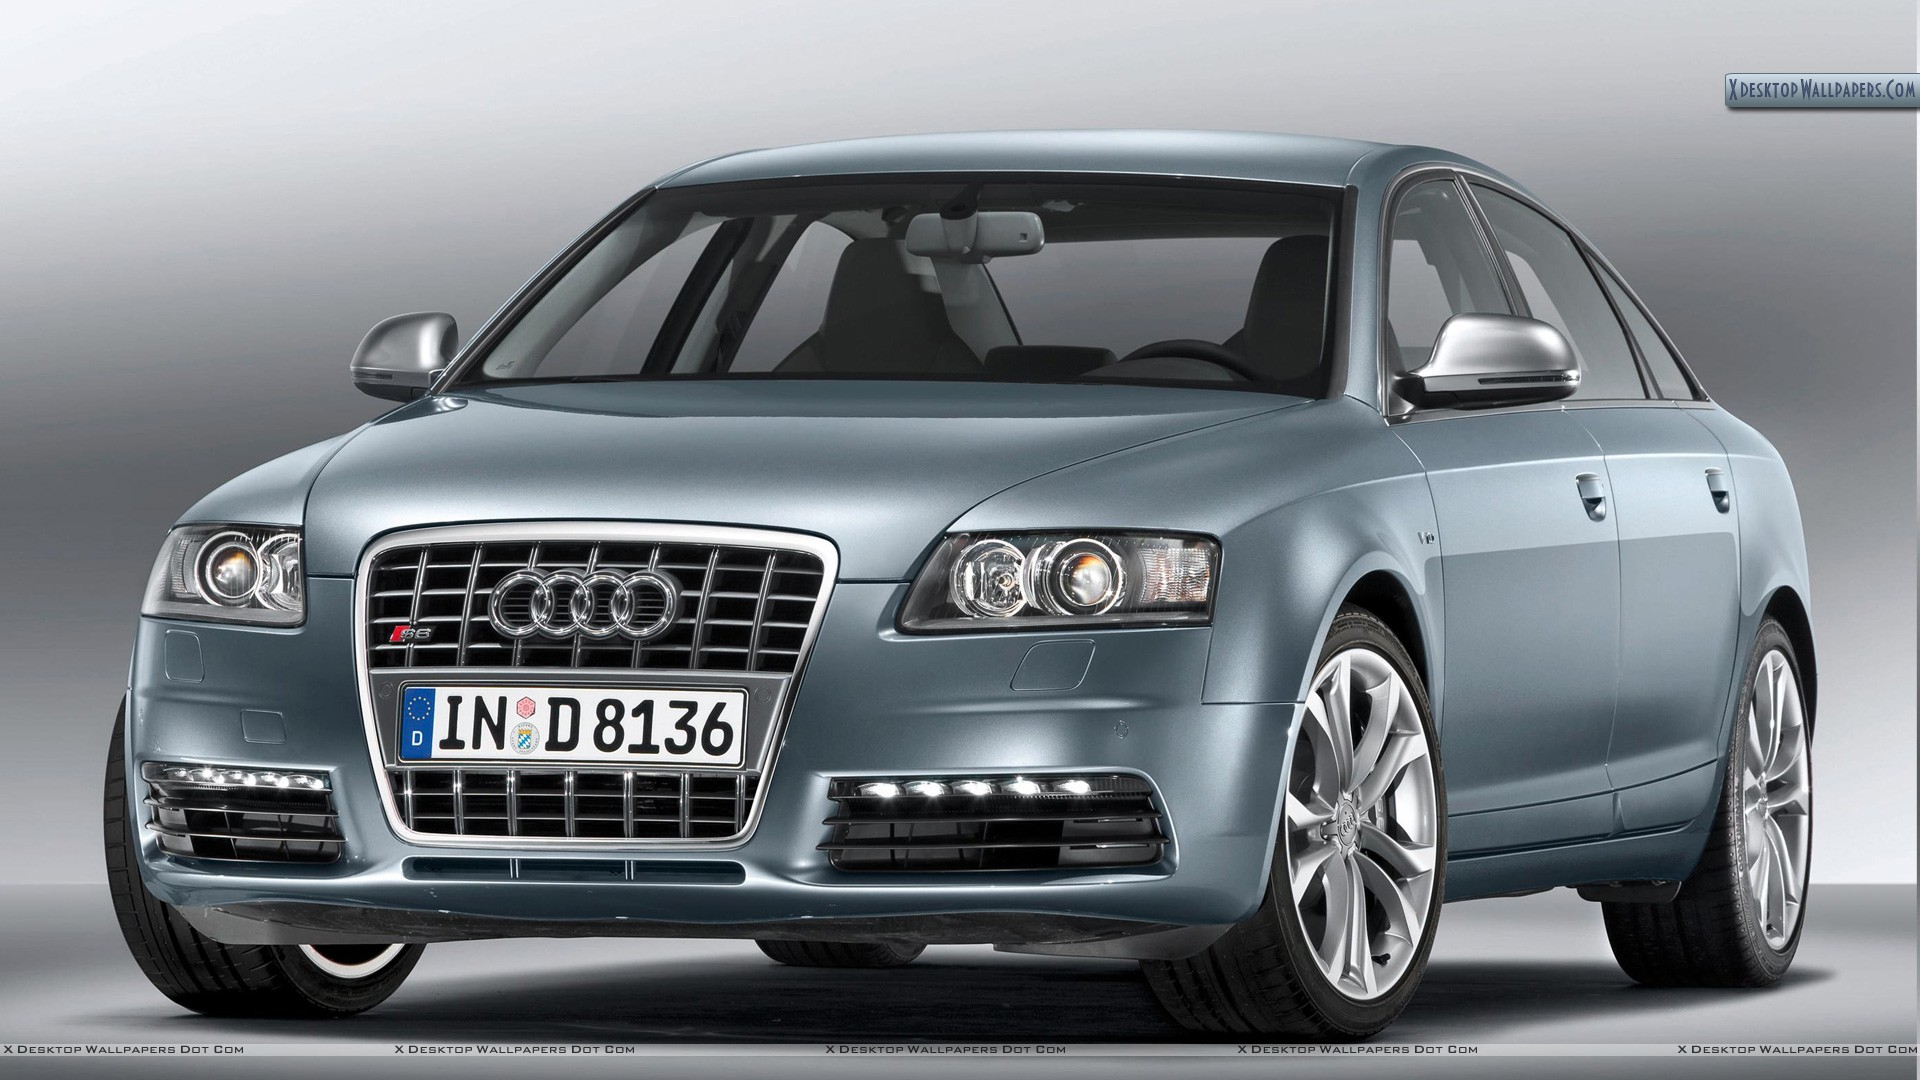 Audi S6 Wallpapers, Photos & Images in HD